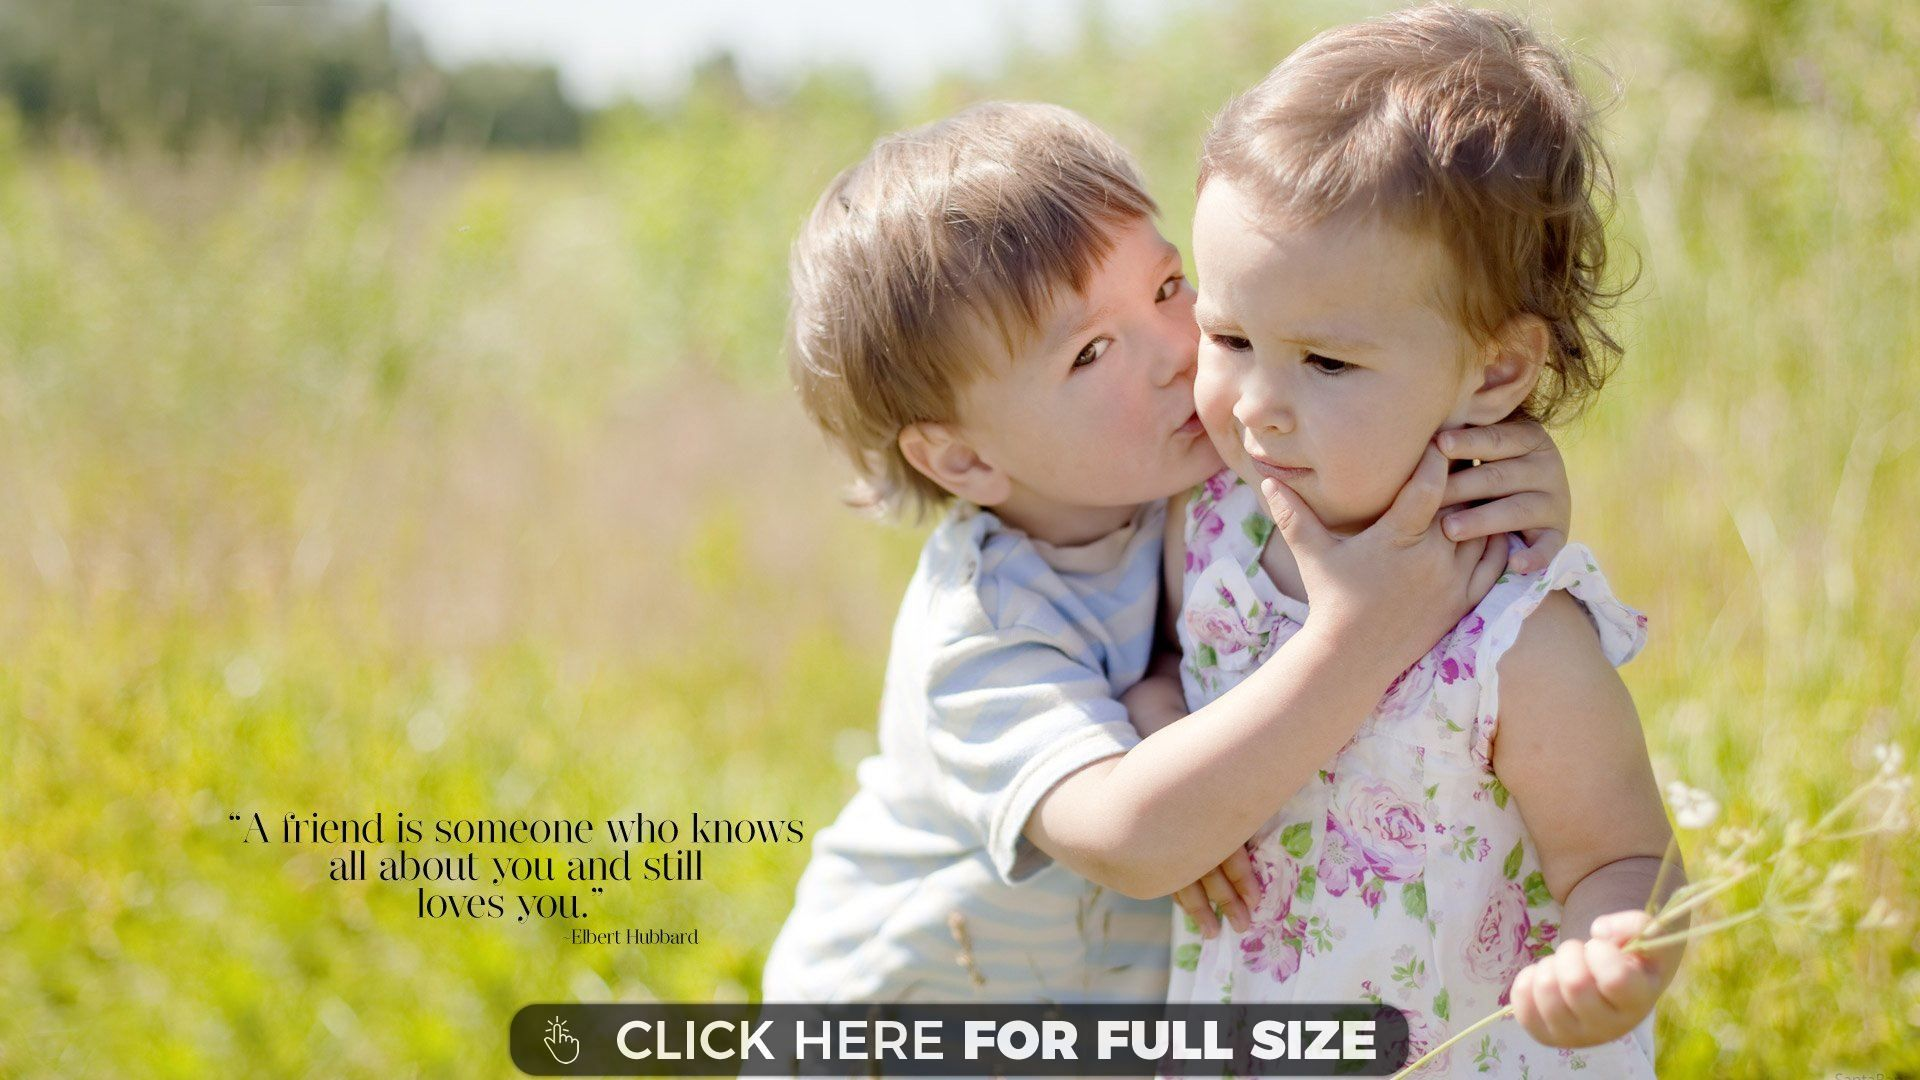 Cute Boy Kissed Her Girl Friend Friendship Day Wallpaper Happy Kiss Day Happy Kiss Day Images